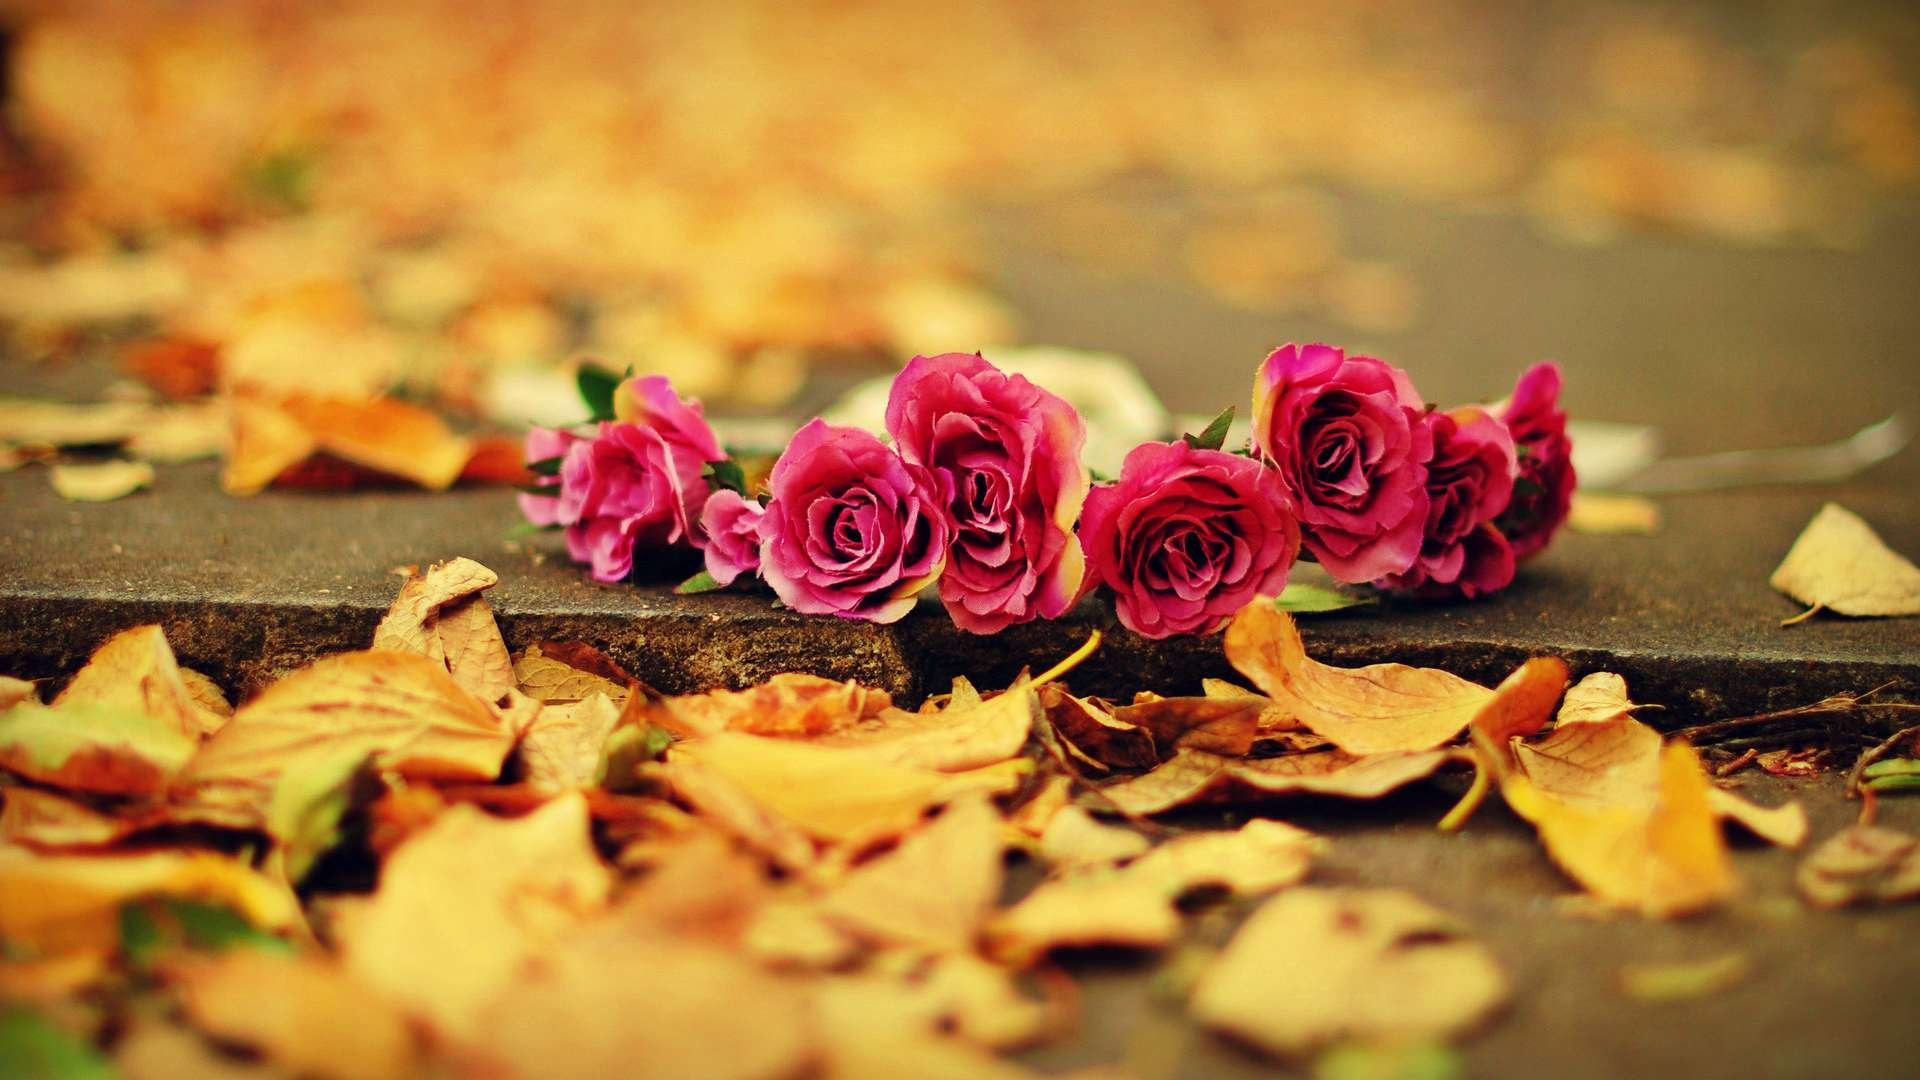 fall-background-rose